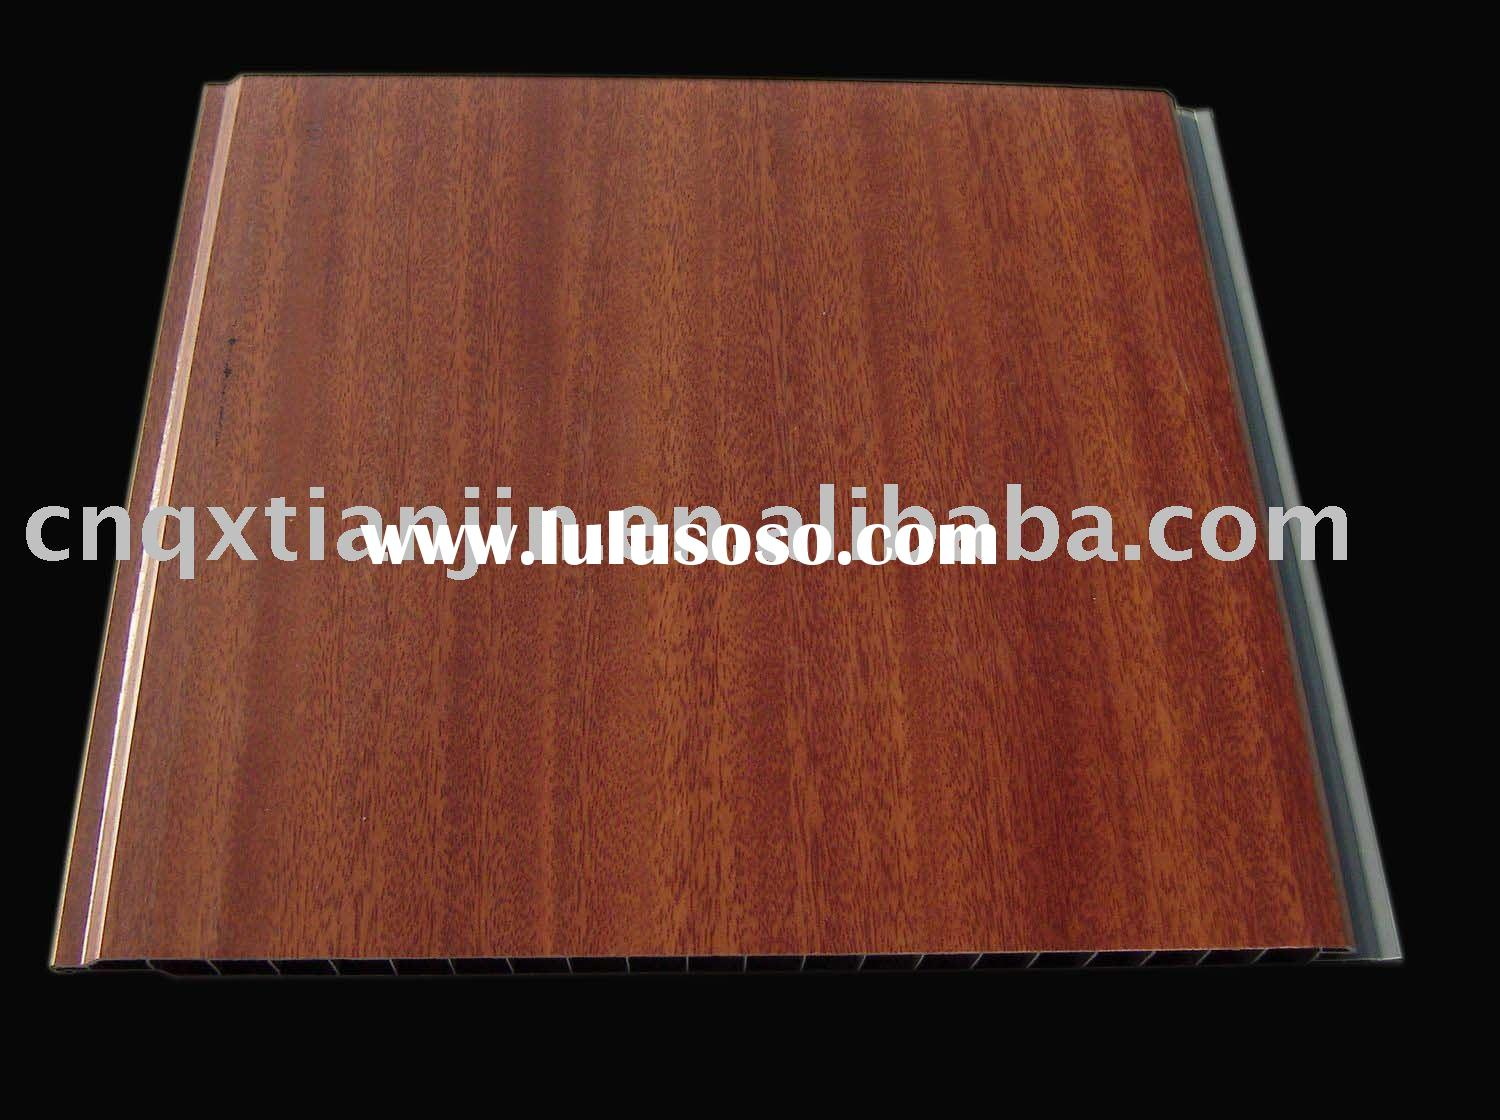 Laminated PVC ceiling panel 250mm*7.5mm*5.95m